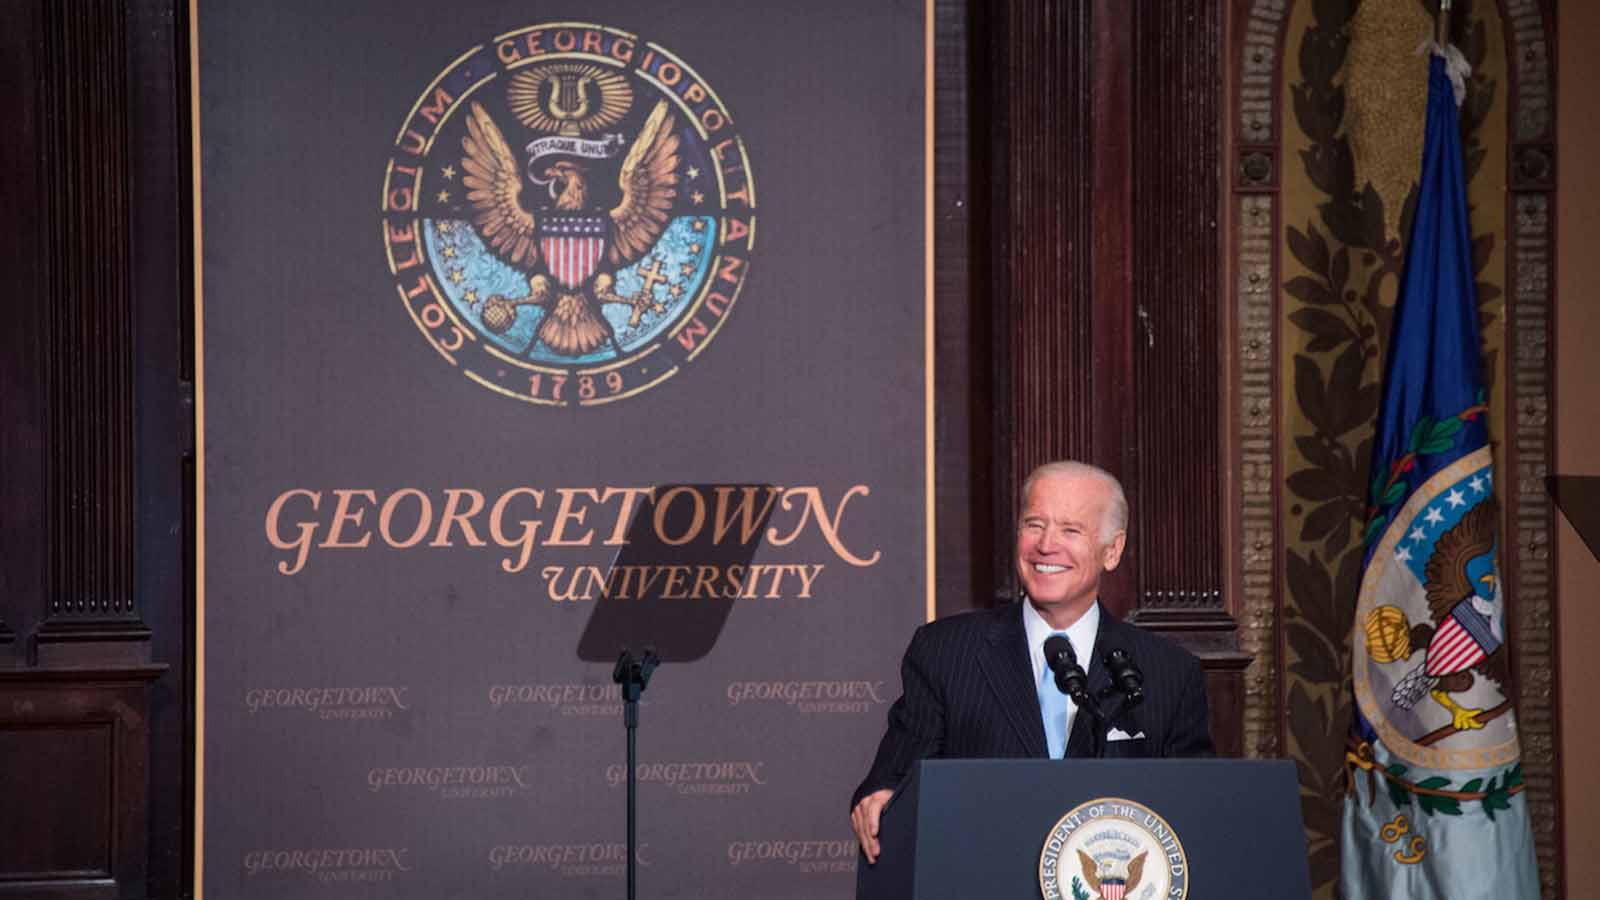 Joe Biden at Georgetown University in 2016.